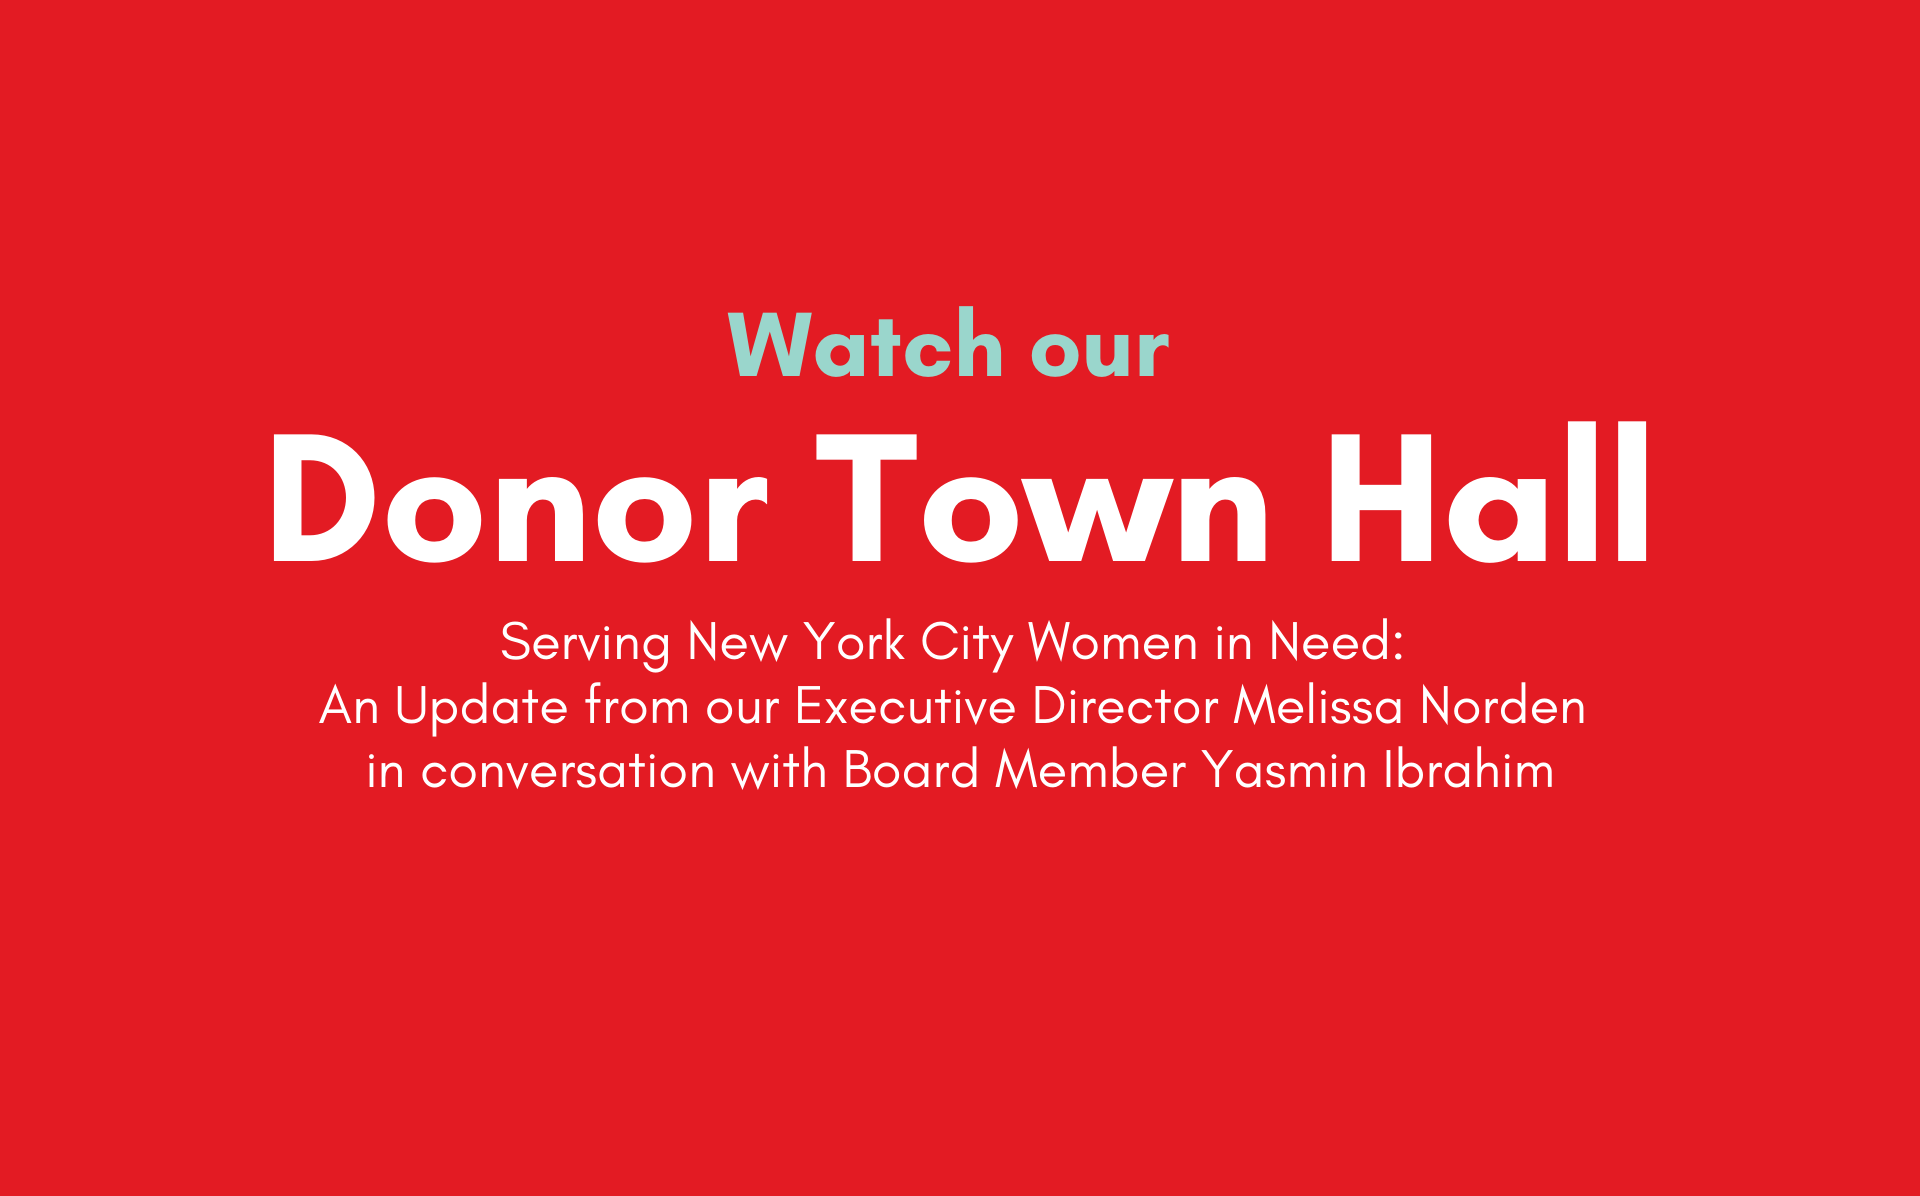 Donor Town Hall